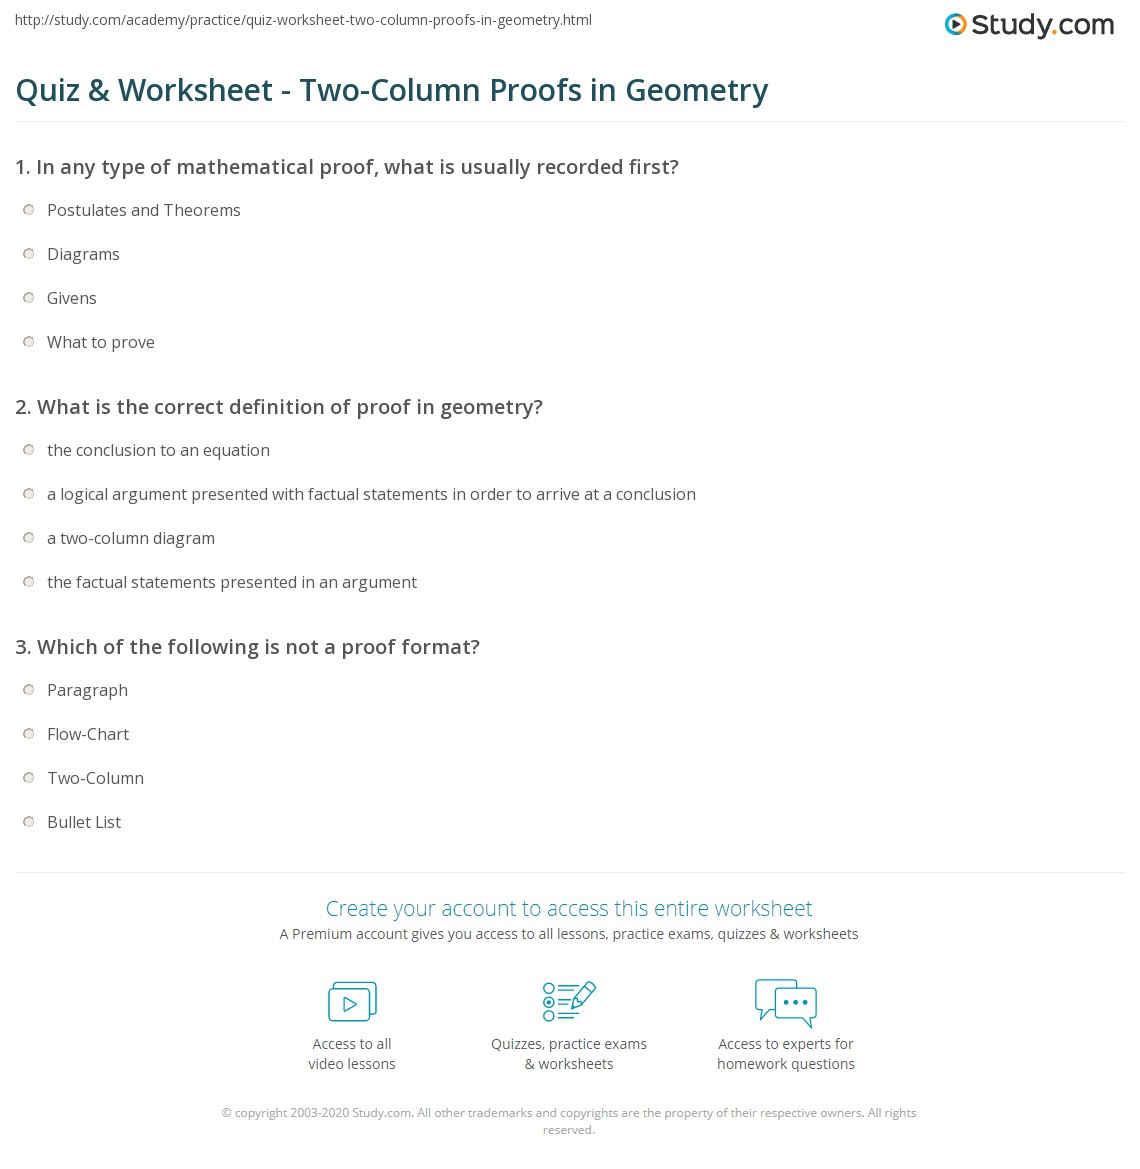 quiz worksheet two column proofs in geometry com print two column proof in geometry definition examples worksheet